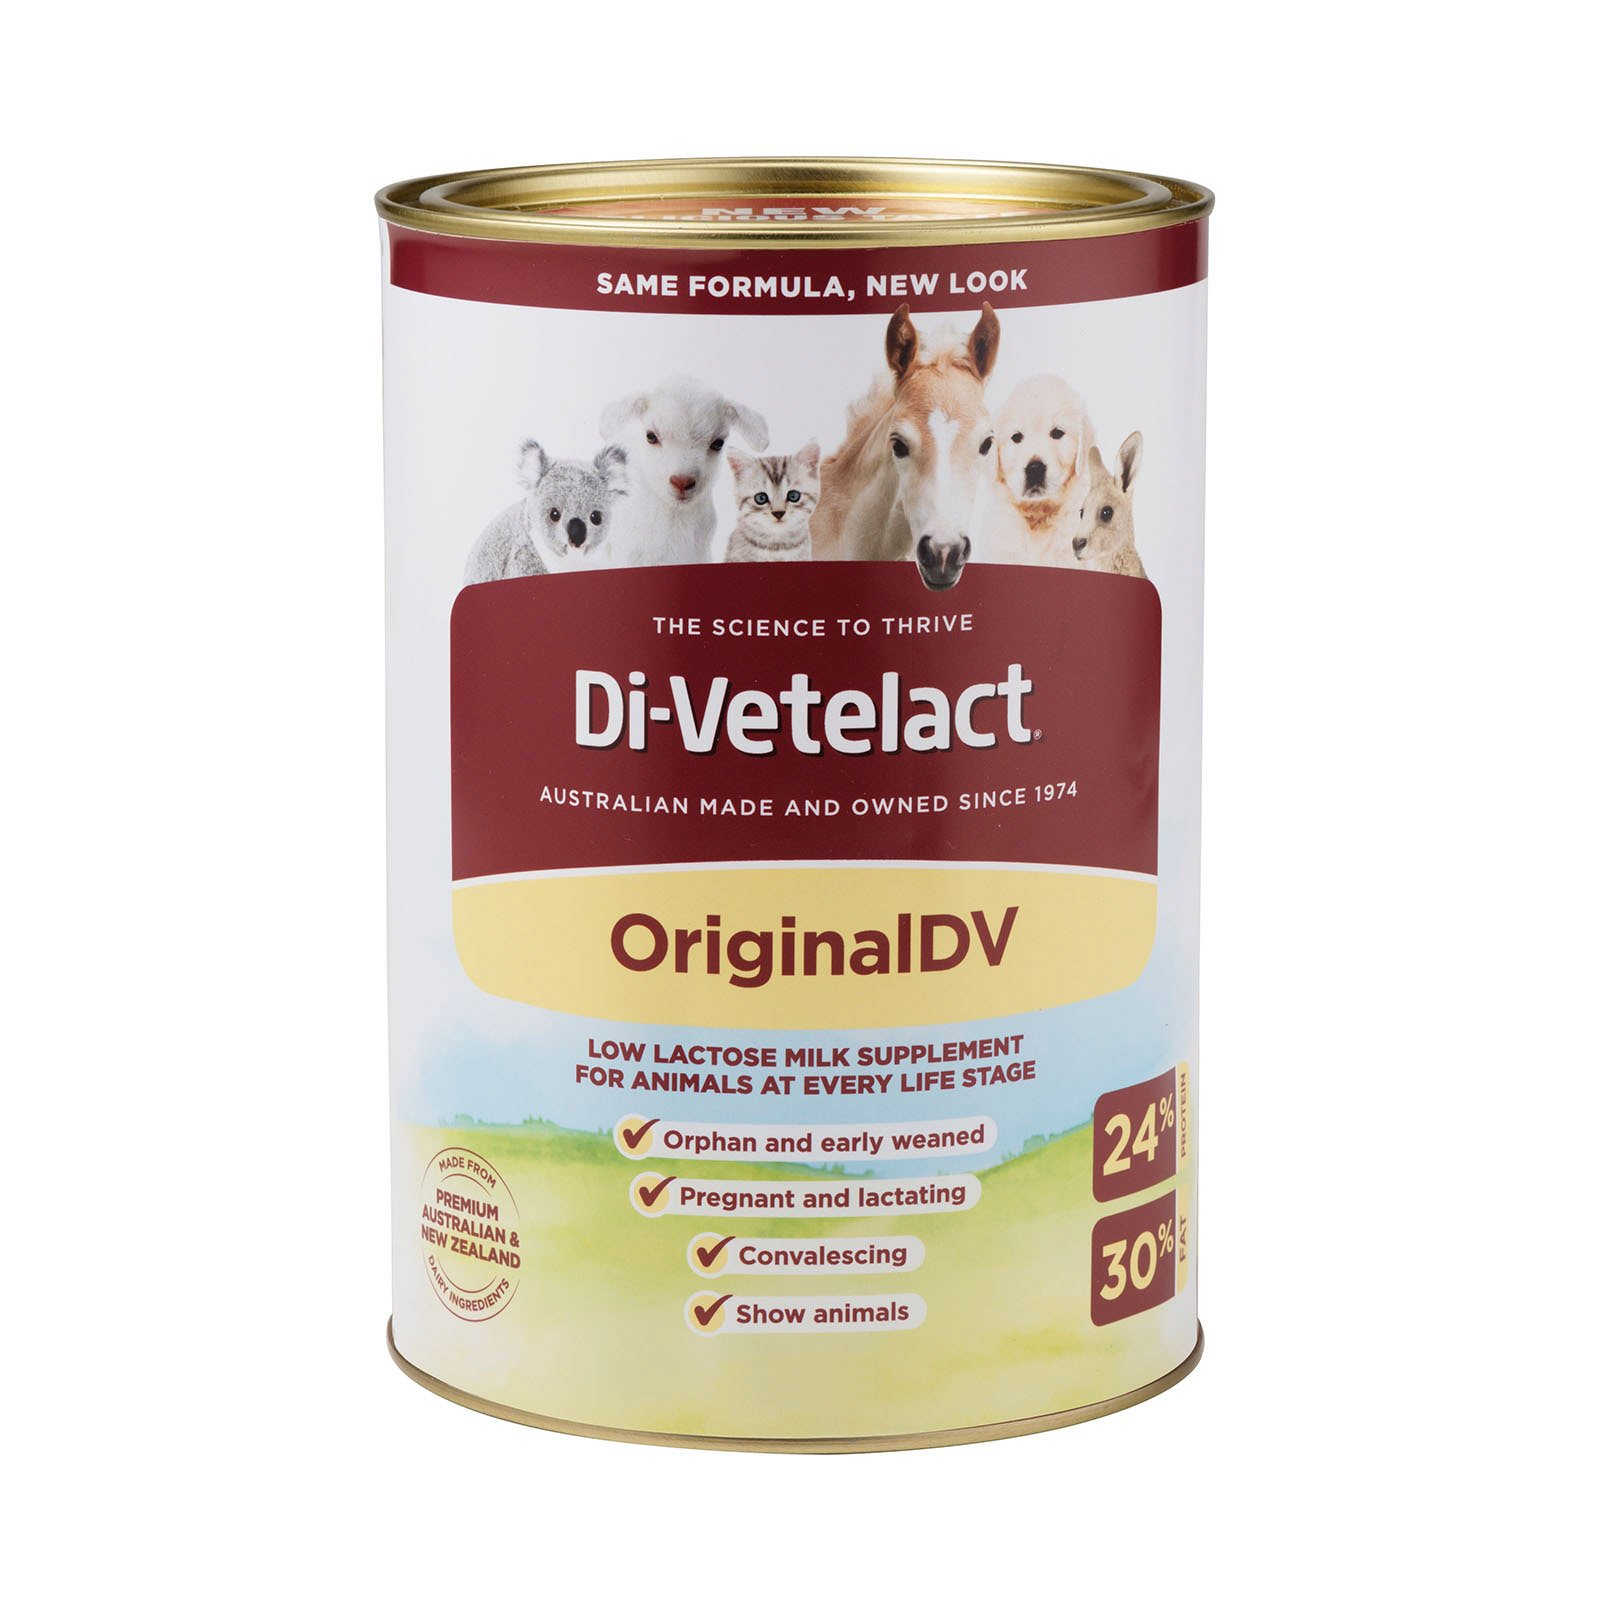 Di-Vetelact – Low Lactose Supplement